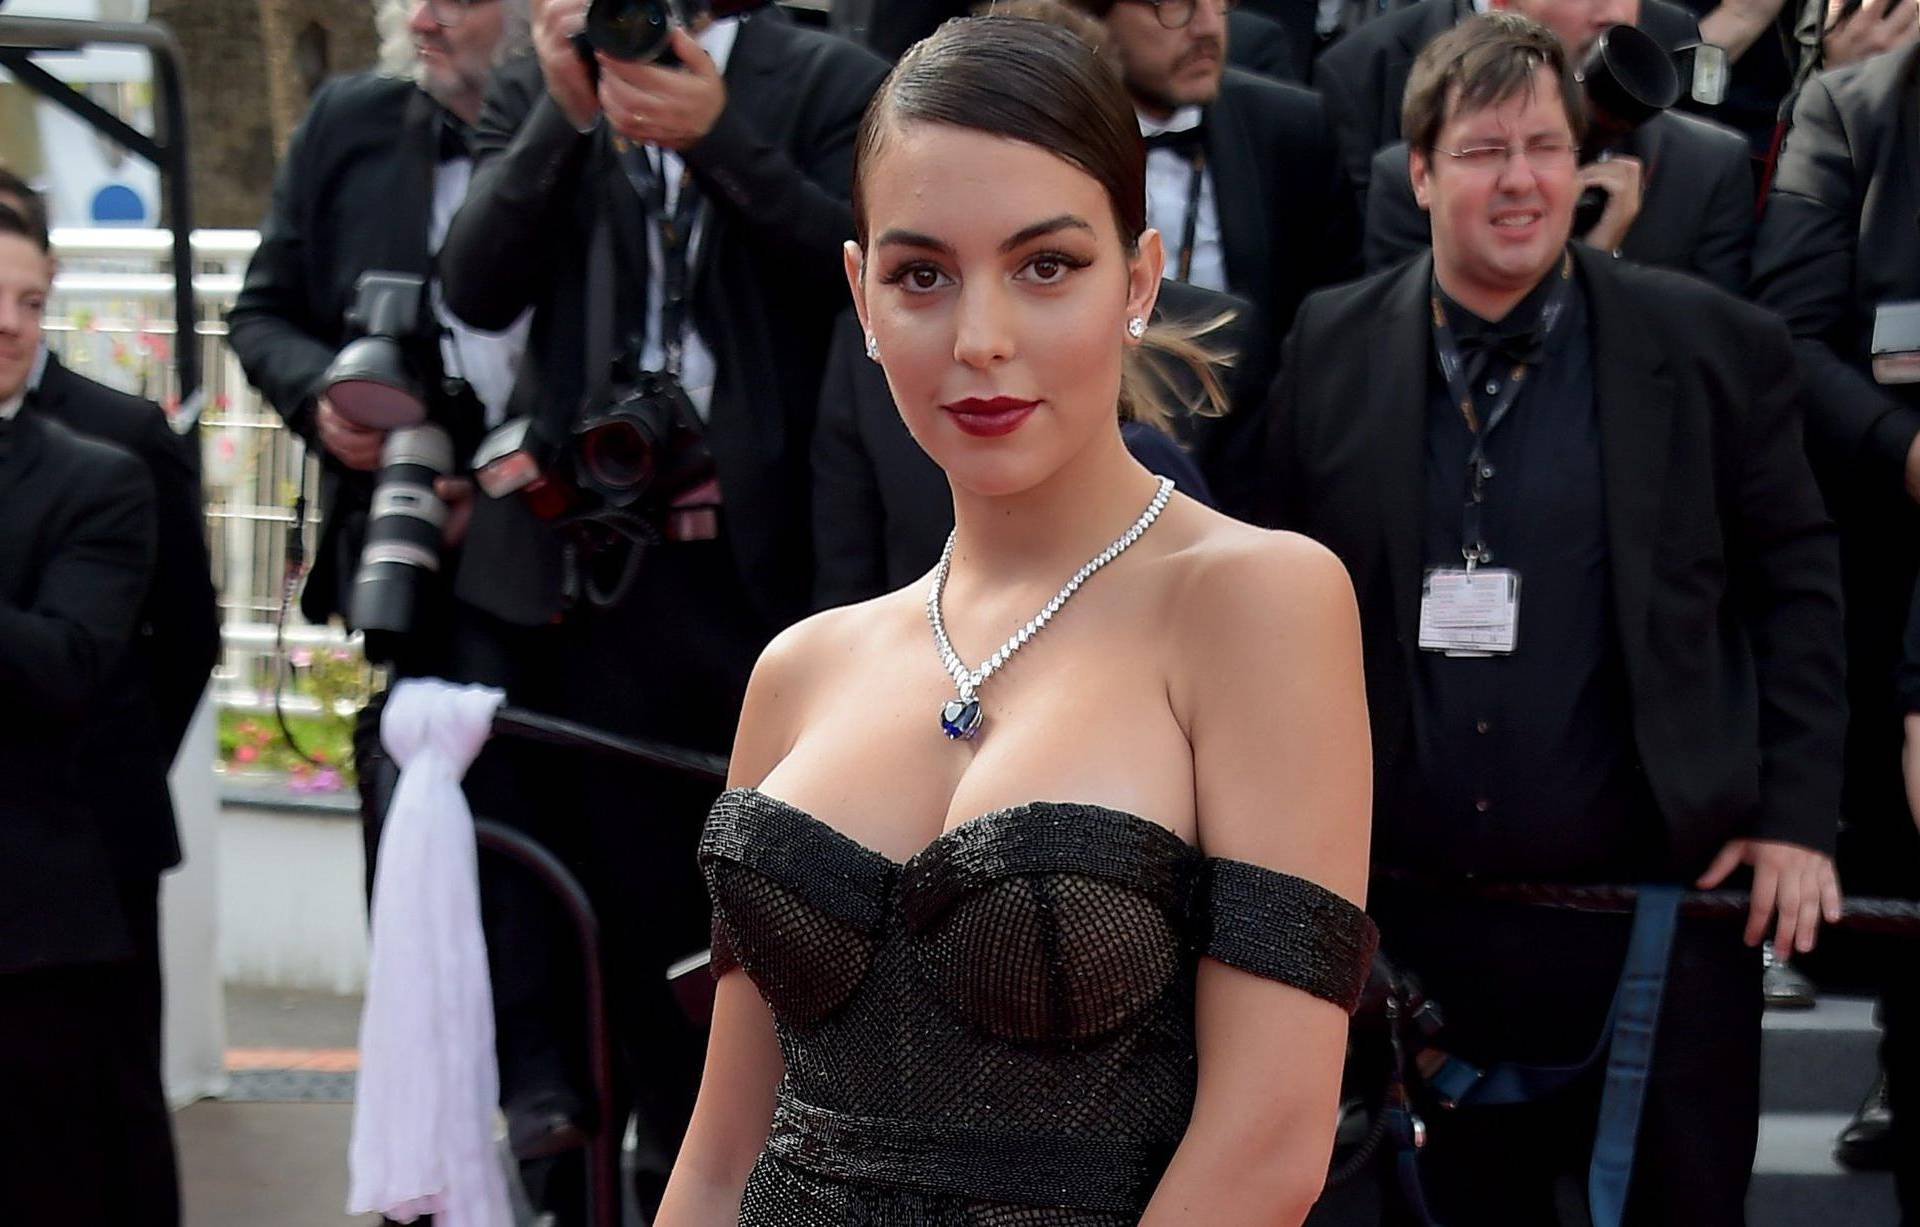 72nd Cannes Film Festival, Red Carpet film : Once upon a time in & Hollywood